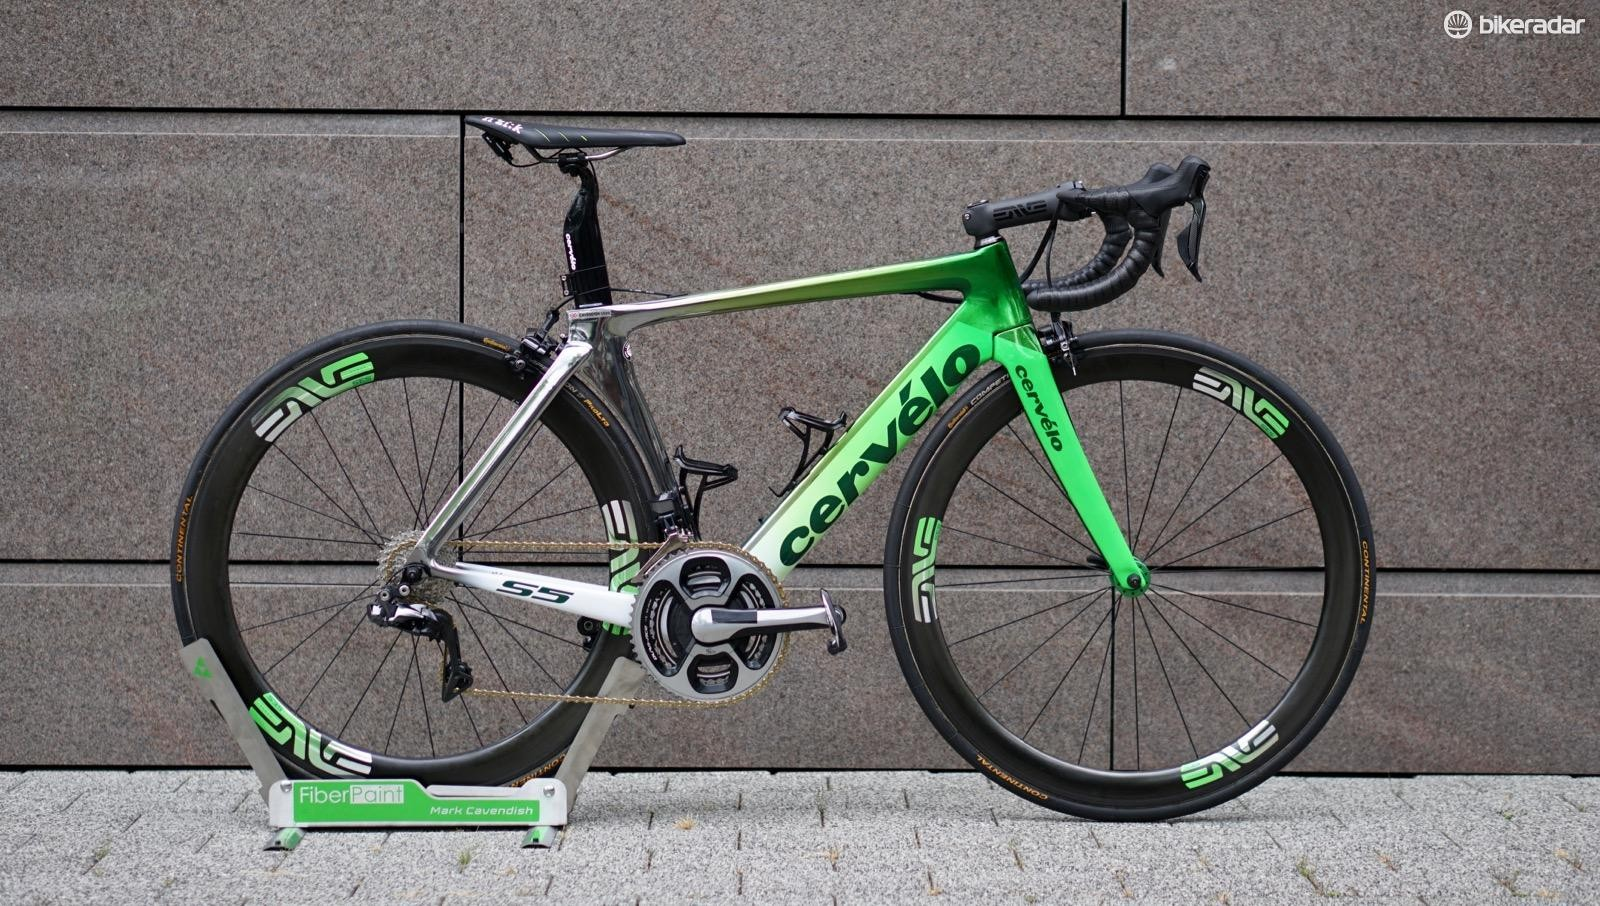 Mark Cavendish had a special paint job on his Cervélo S5 for the Tour de France